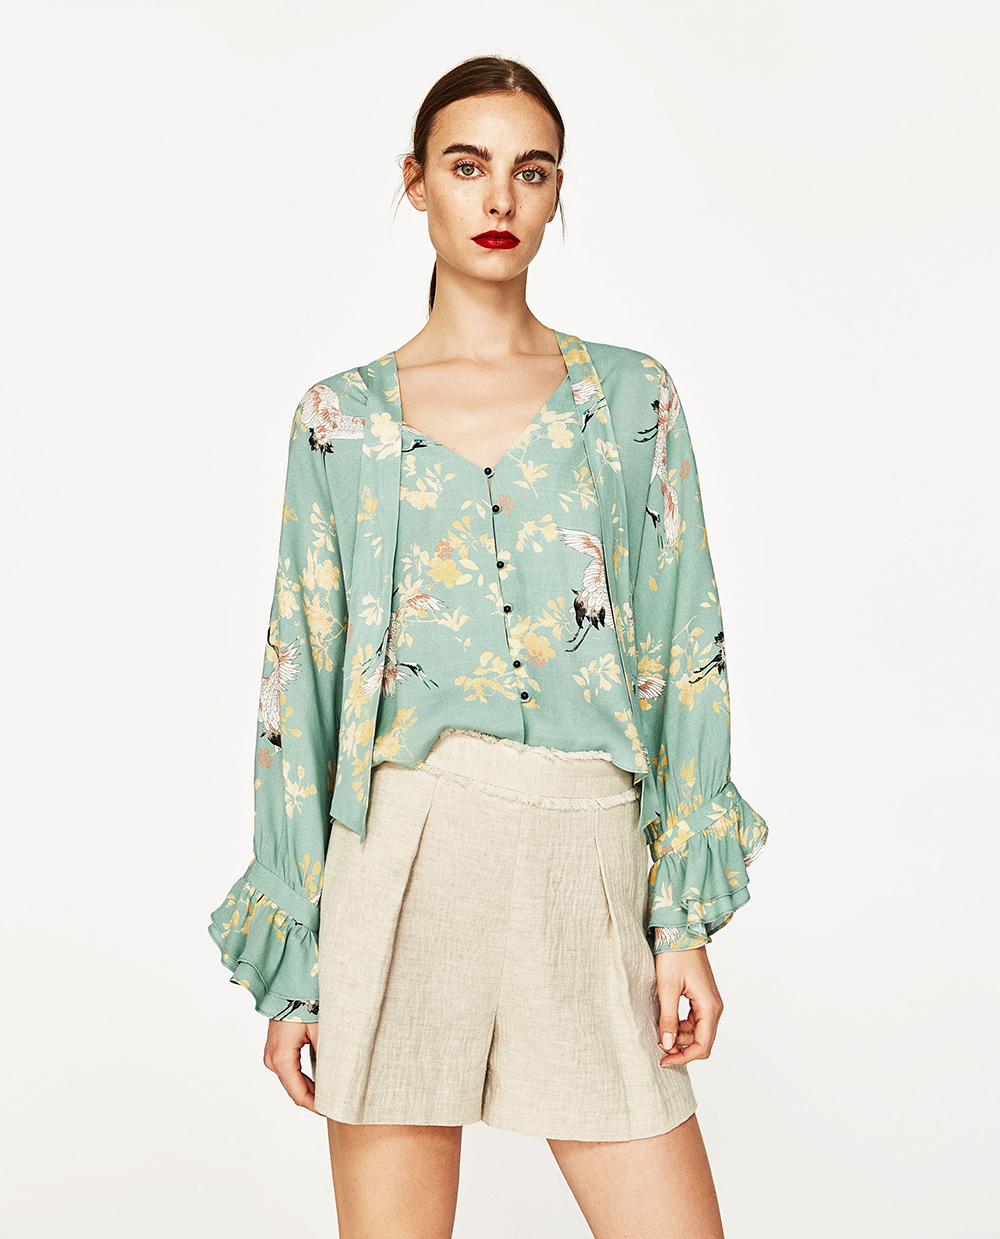 Zara Blouse With Heron Print - Statement Sleeves